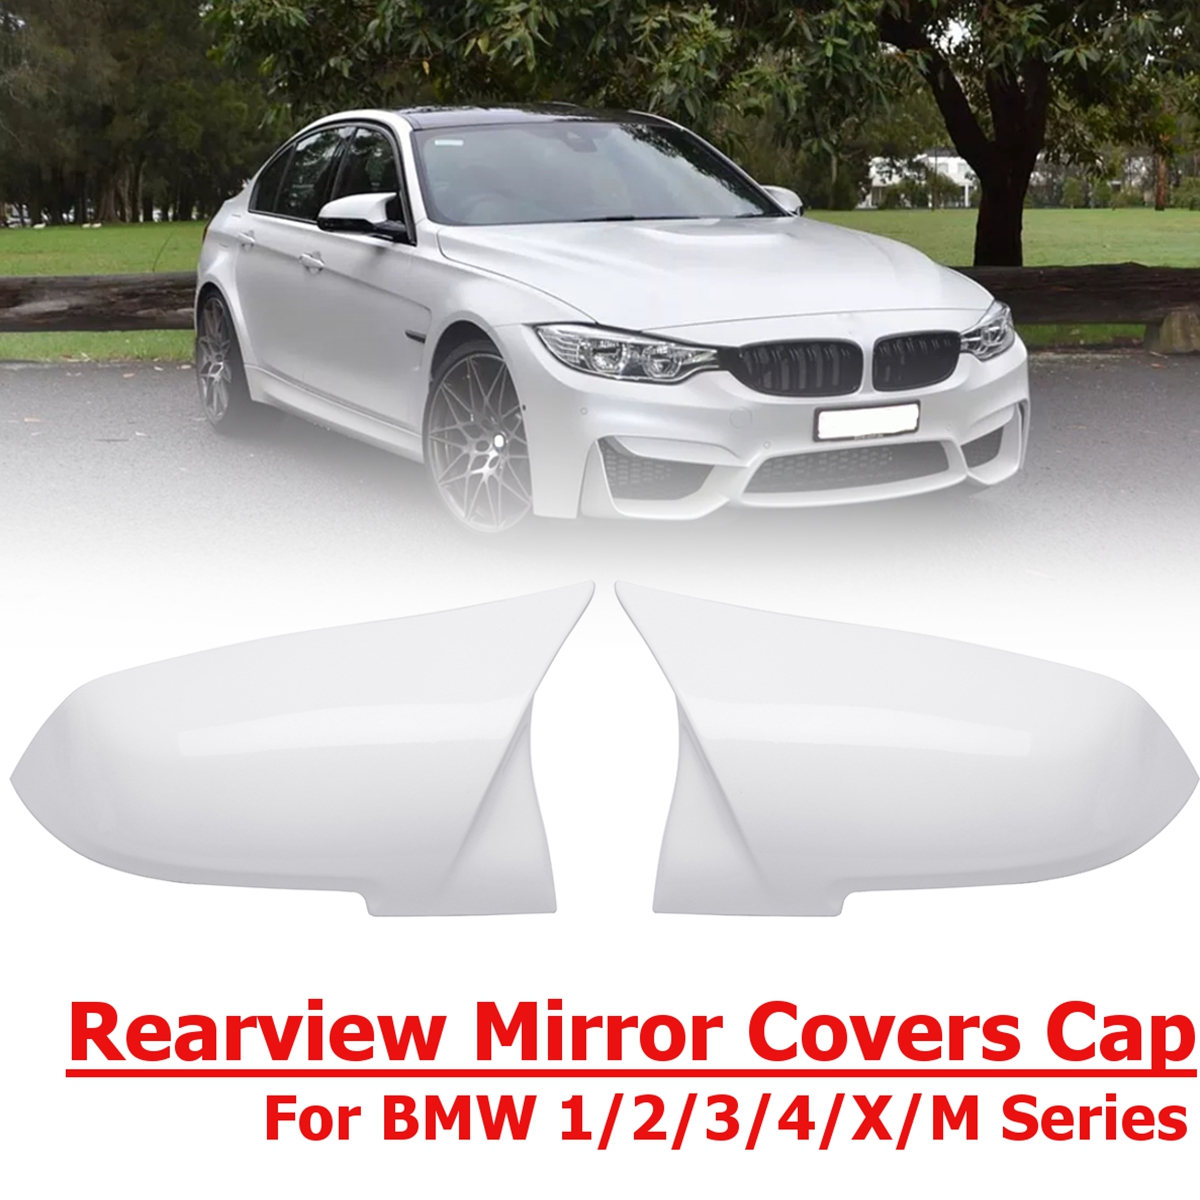 Latest Collection Of Pair White Abs Rearview Mirror Cover Cap For Bmw 1/2/3/4/x/m Series F20 F21 F22 F23 F87 X1 M2 2012-2018 High Quality Materials Auto Replacement Parts